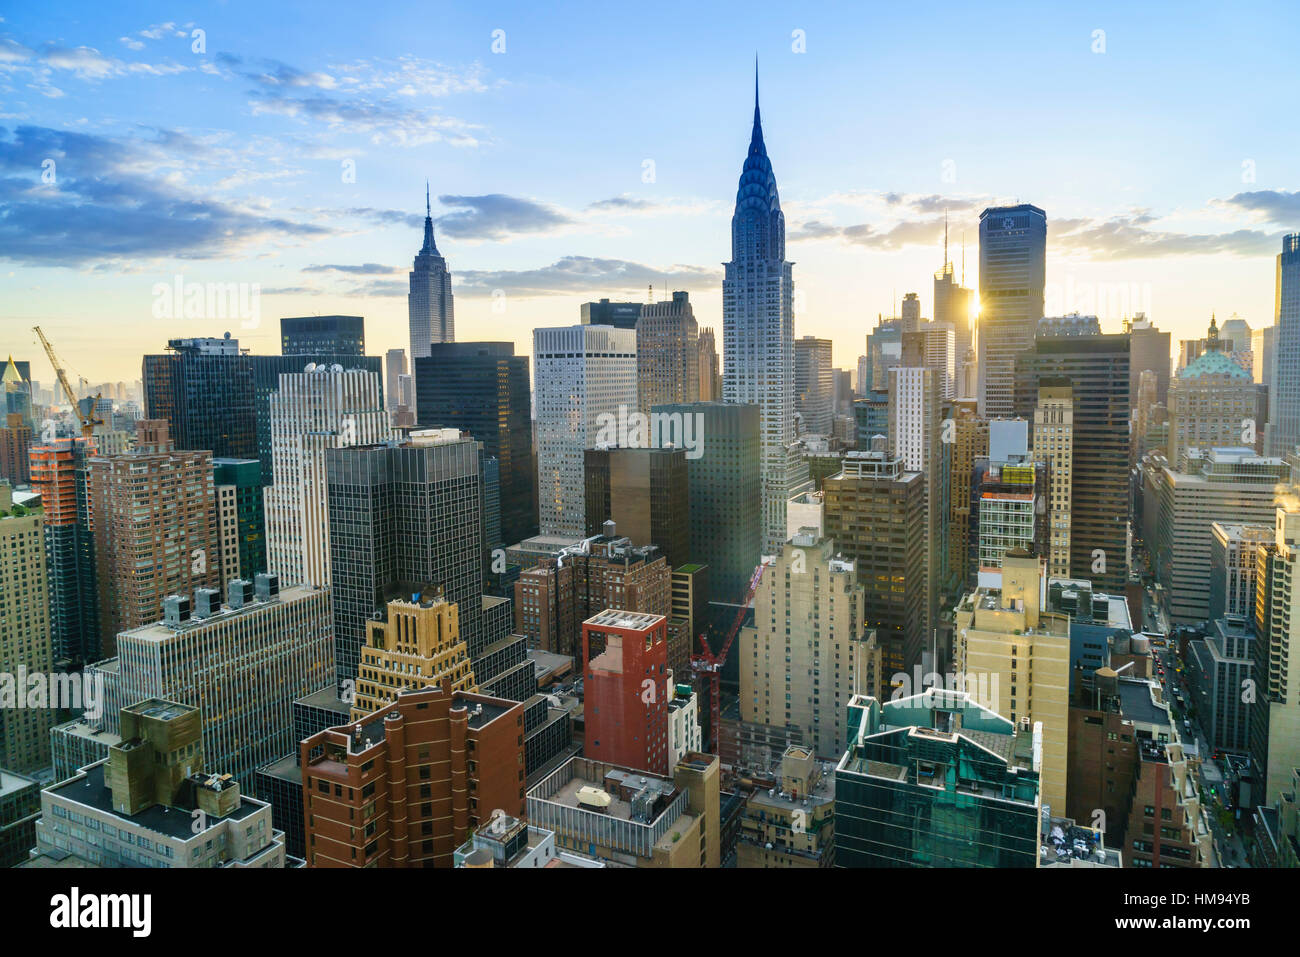 Manhattan skyline, Empire State Building and Chrysler Building at sunset, New York City, United States of America, - Stock Image